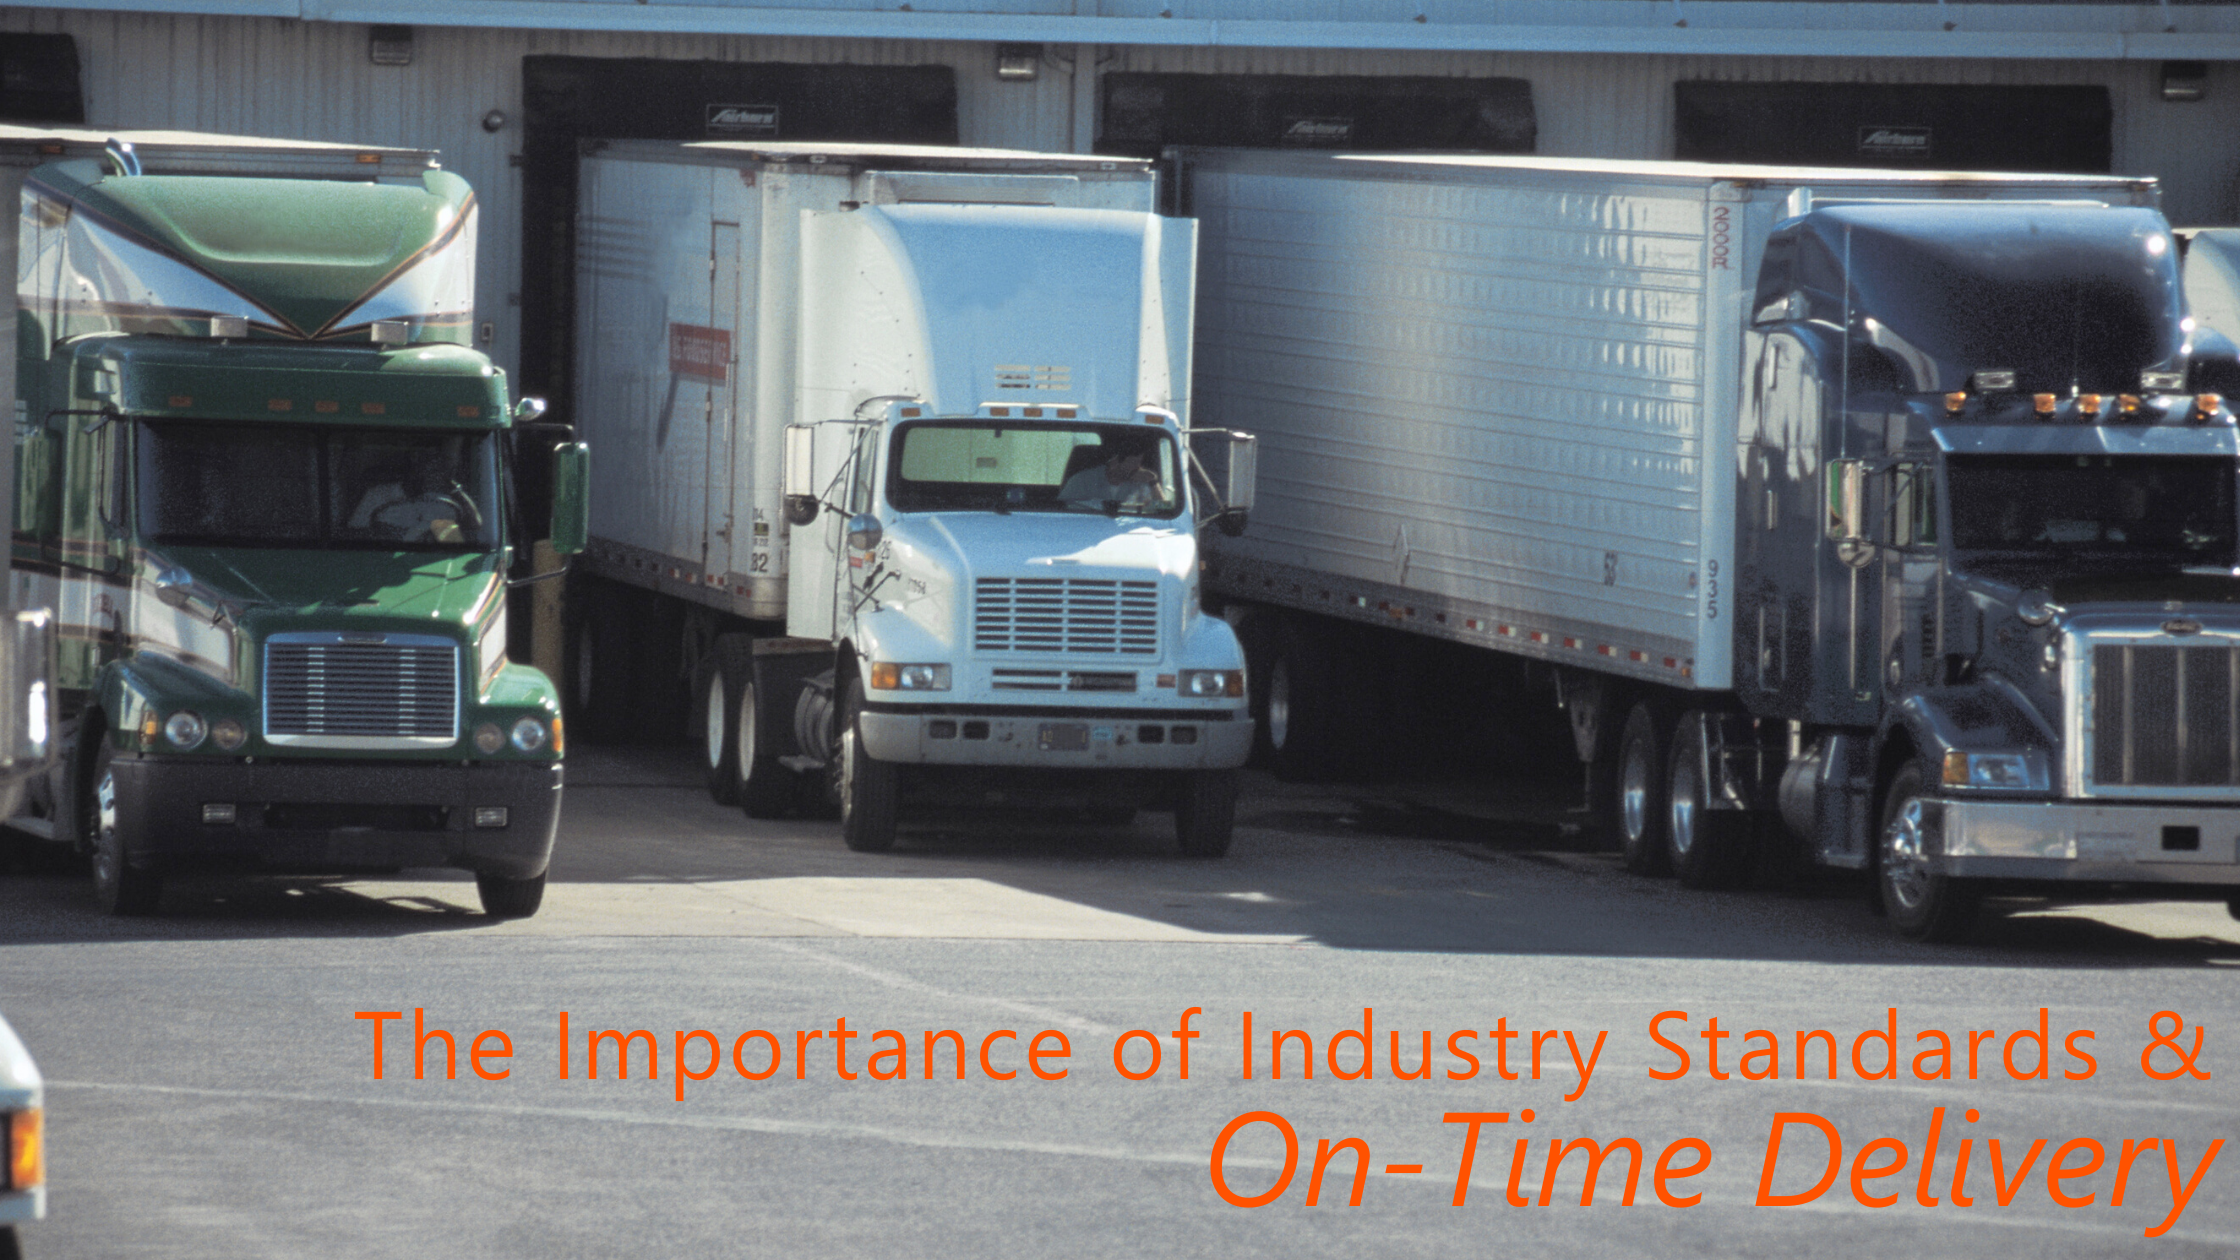 The-Importance-of-Industry-Standards-and-On-Time-Delivery-Semi-Trucks-Backed-into-Warehouse-Docks